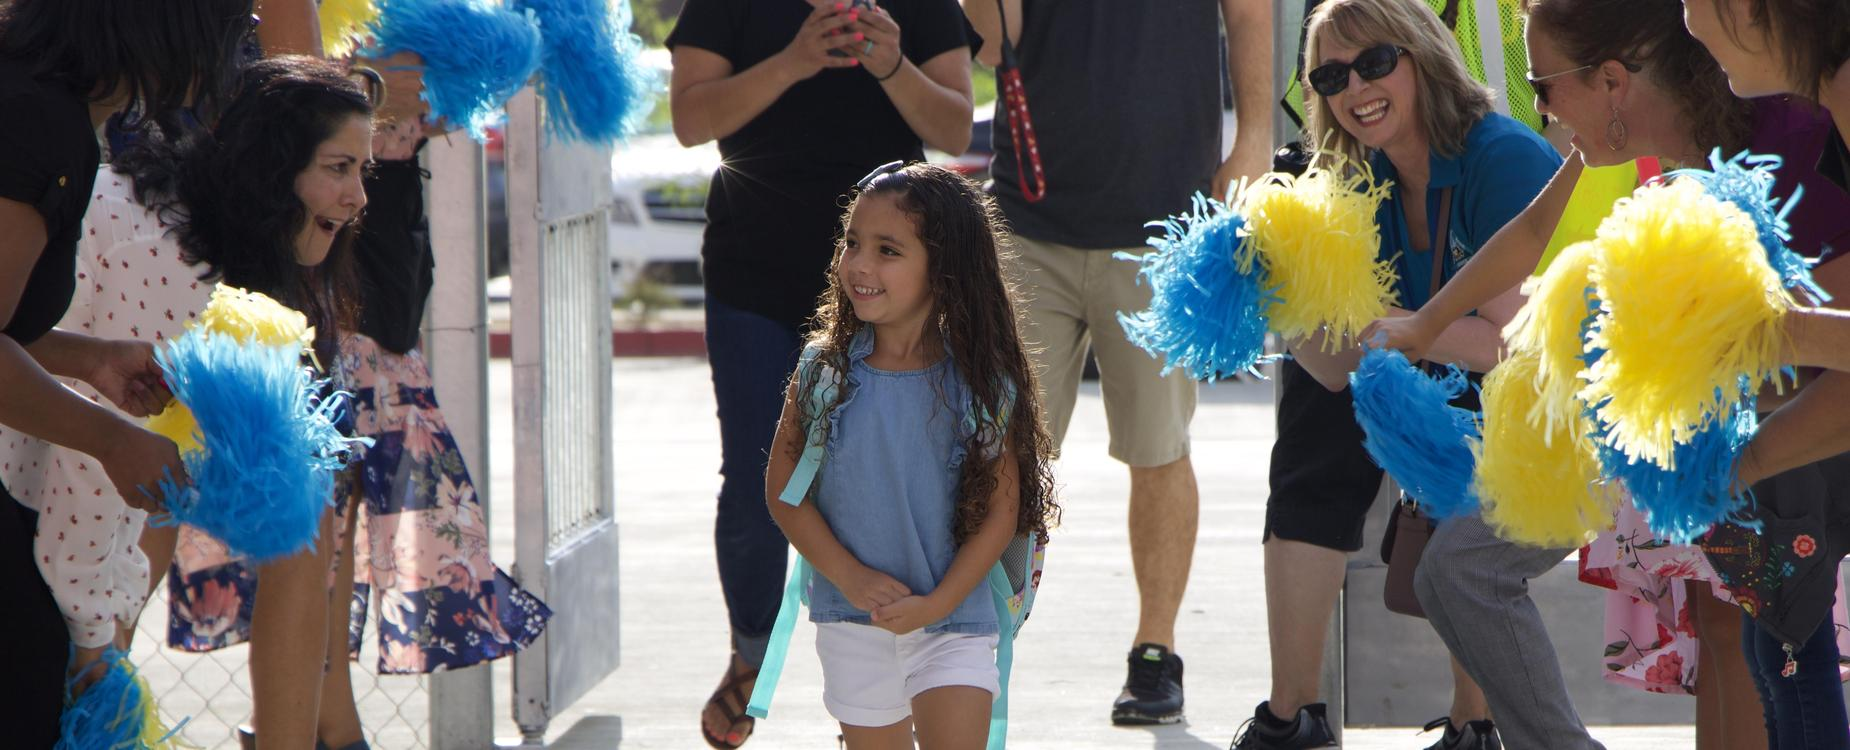 Students welcomed by staff to school